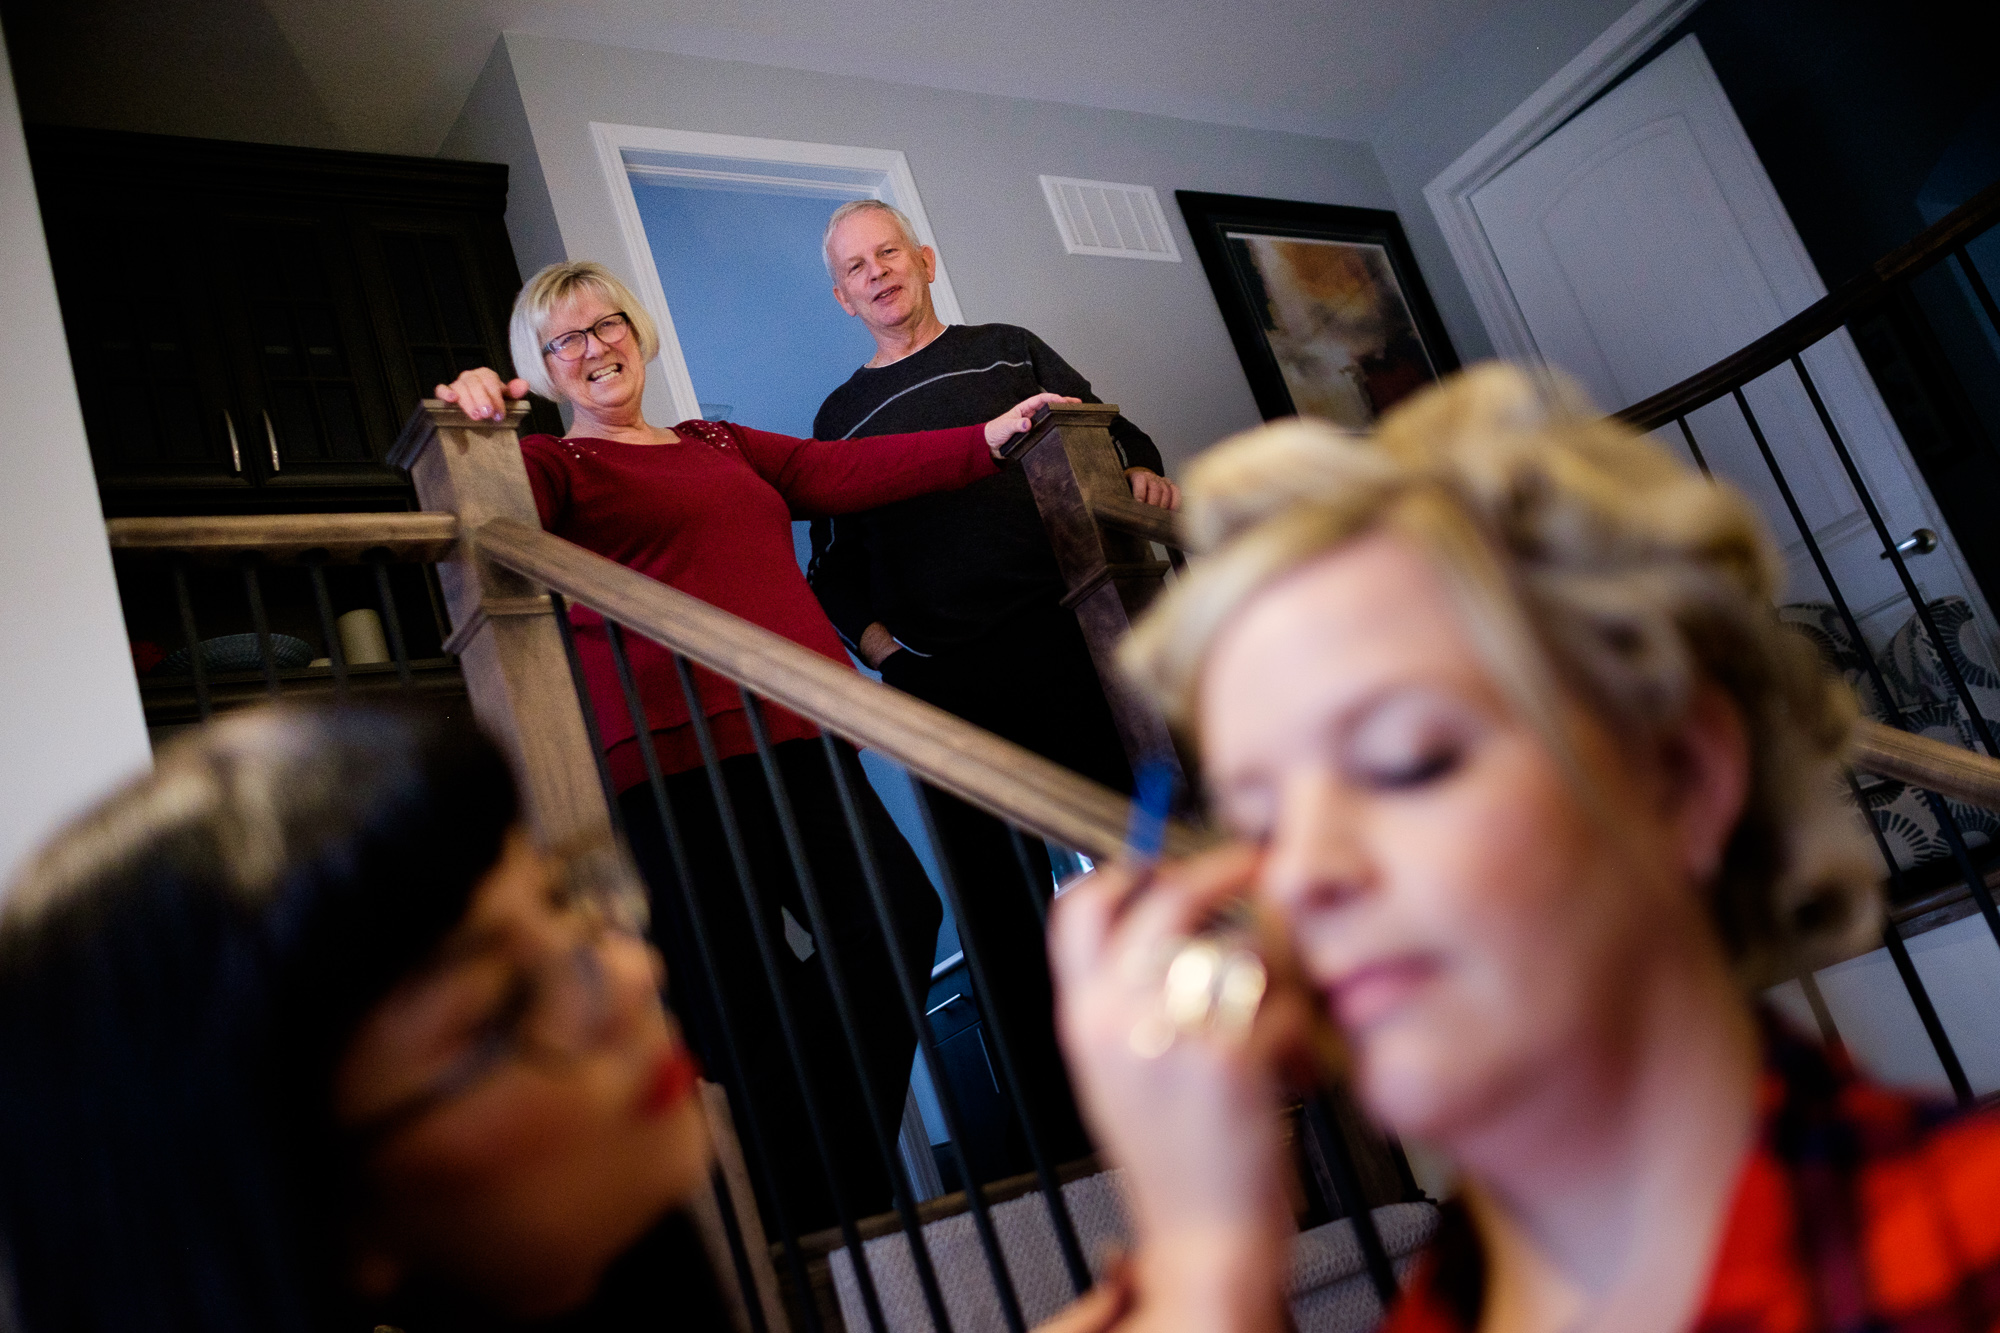 Julia's parents look on as she has her make up done before her wedding at Whistle Bear in Cambridge.